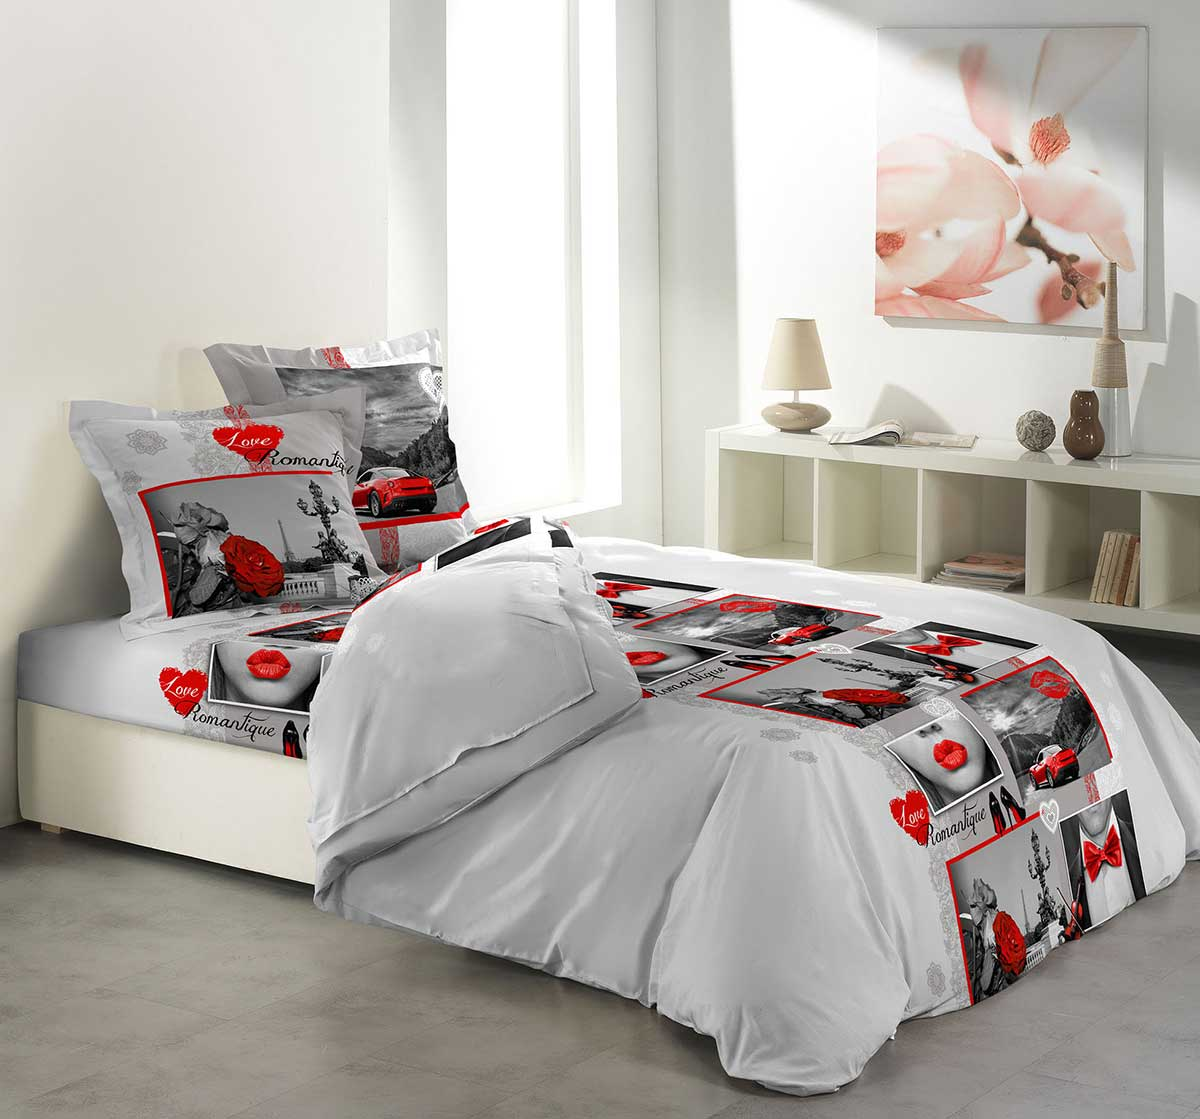 parure de draps clich romantique multicolor. Black Bedroom Furniture Sets. Home Design Ideas